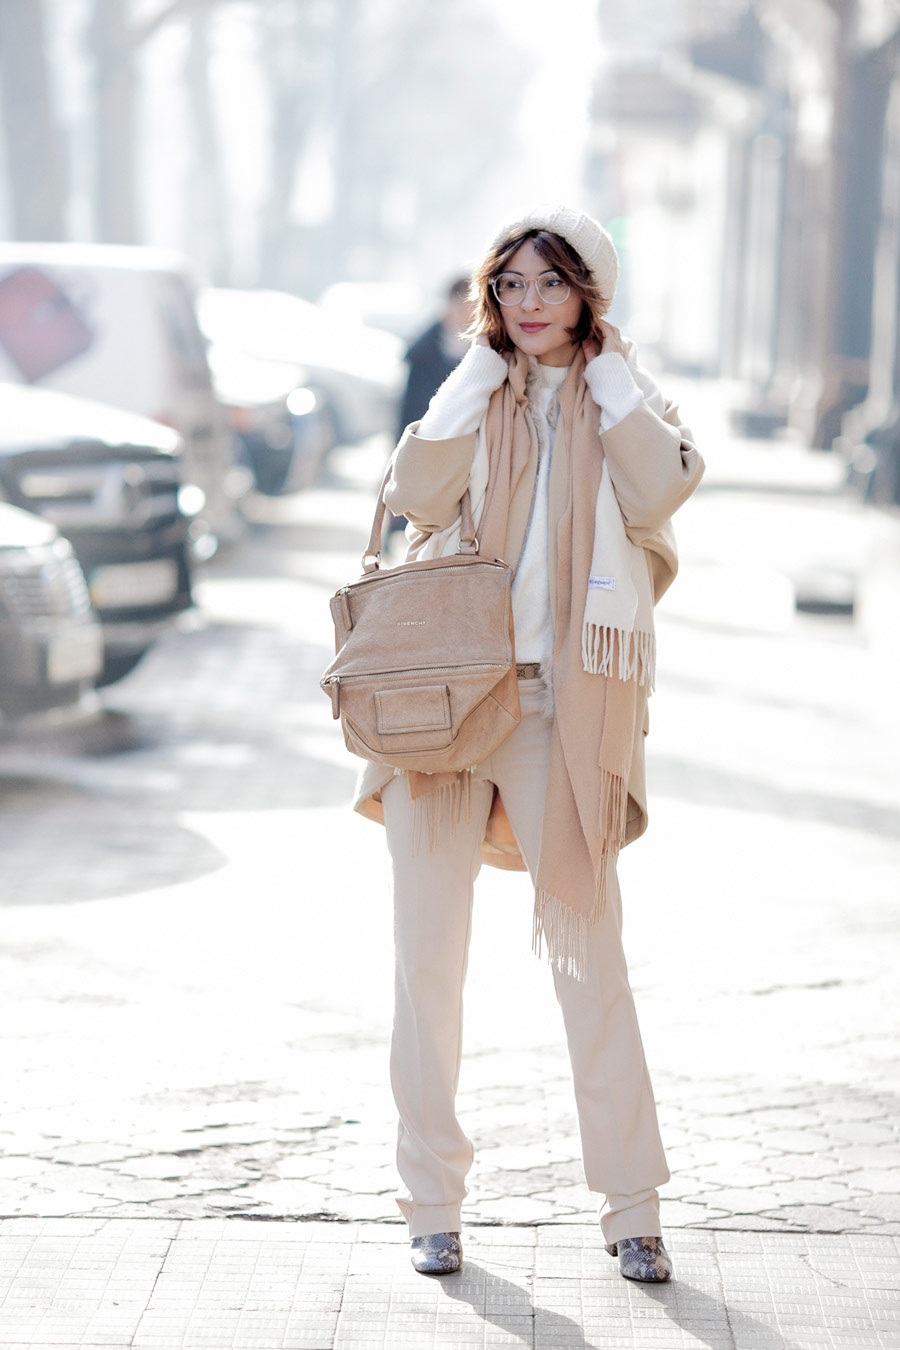 camel coat outfit, givenchy pandora bag outfit, total beige outfit, winter whites, winter outfits,